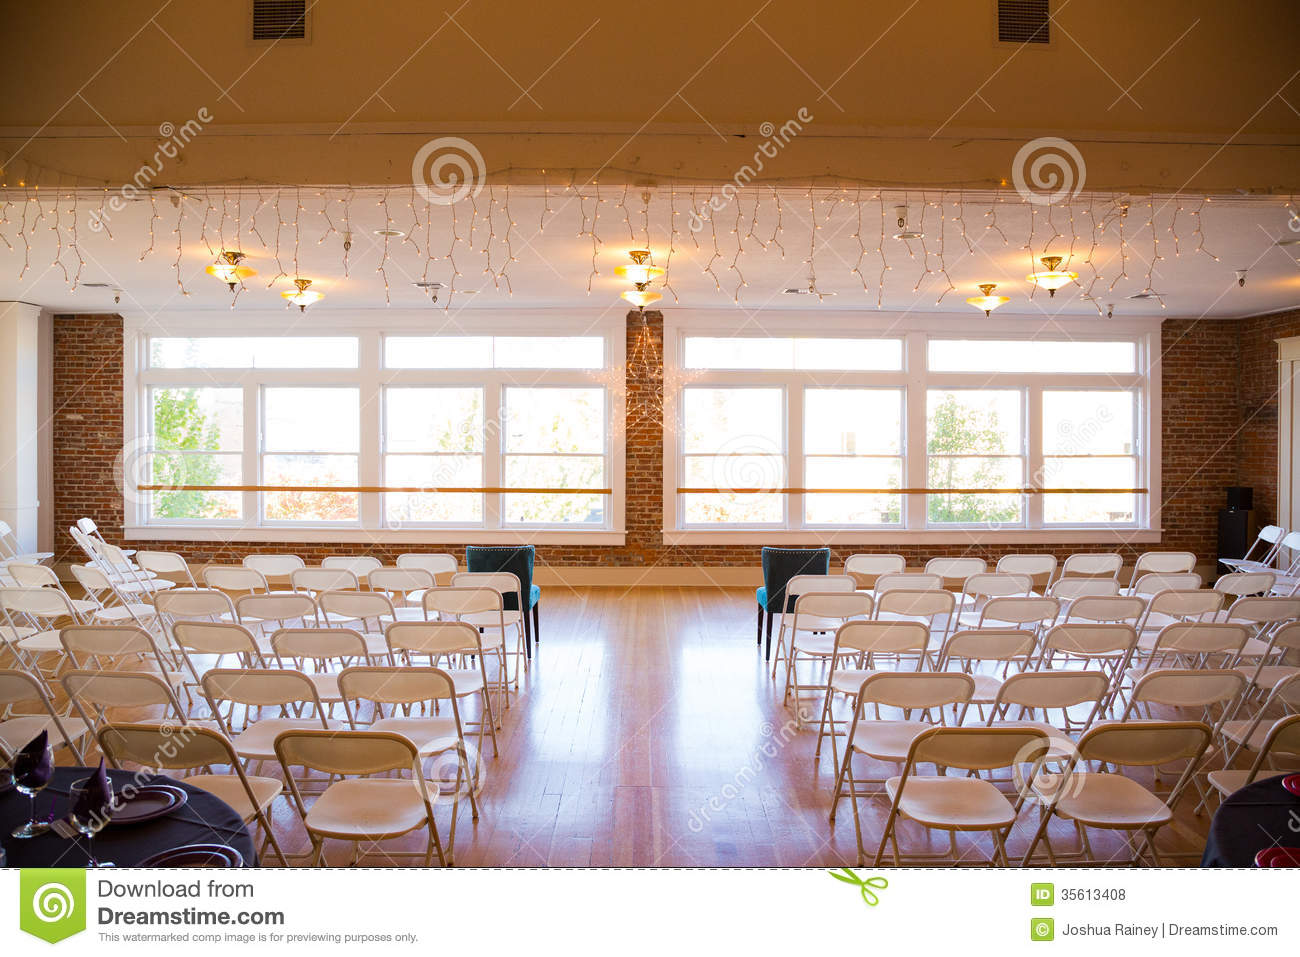 All White Indoor Wedding Ceremony Site: Indoor Wedding Venue Stock Photo. Image Of Chairs, Chair